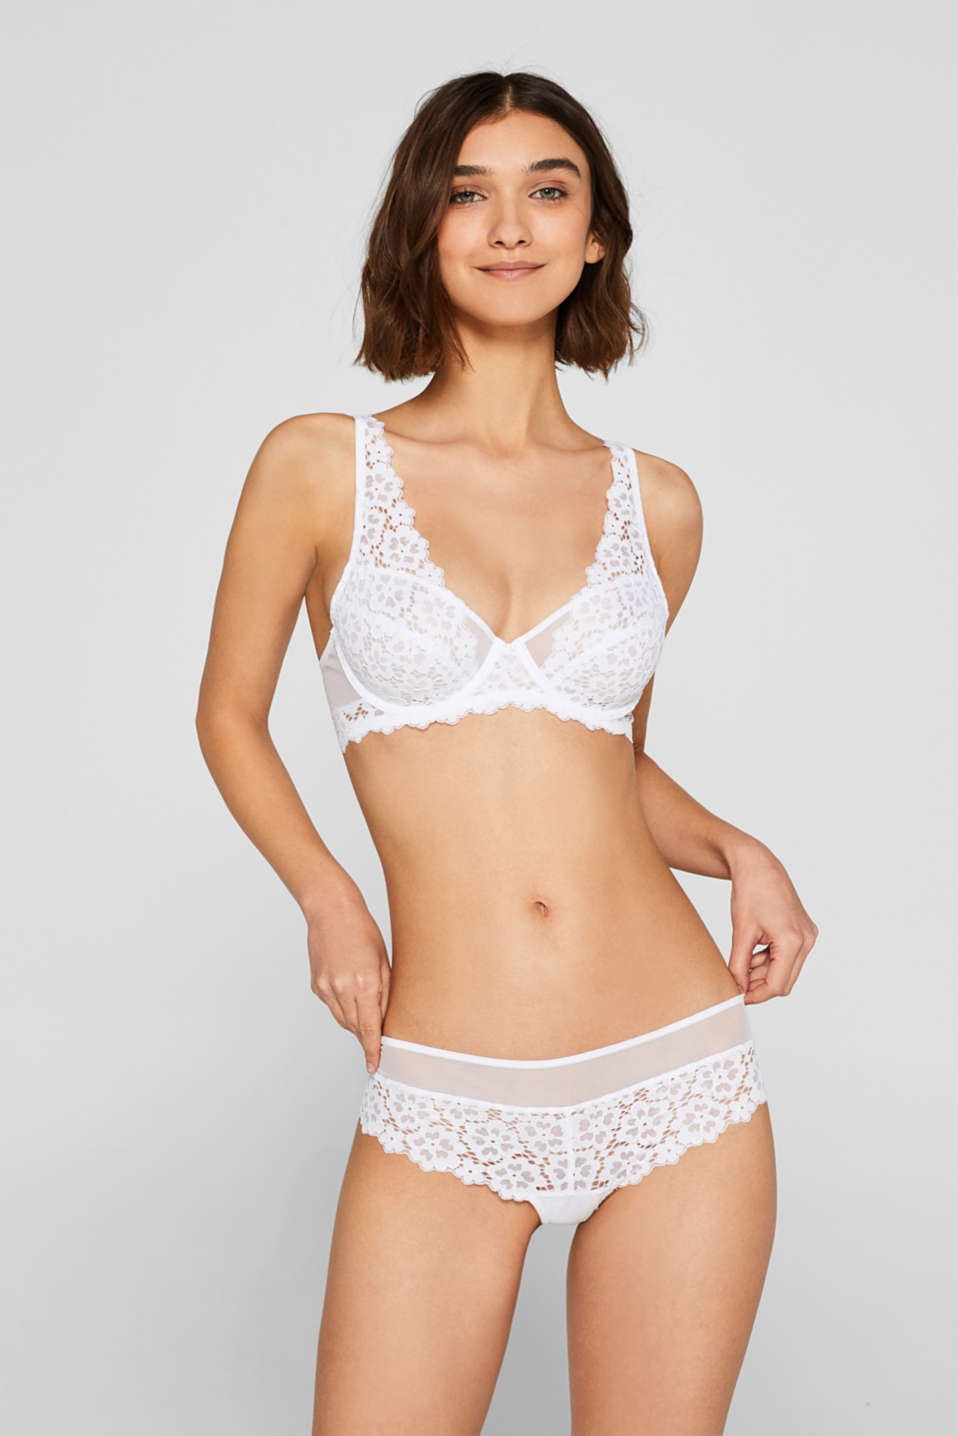 Esprit - Unpadded underwire bra in crocheted lace